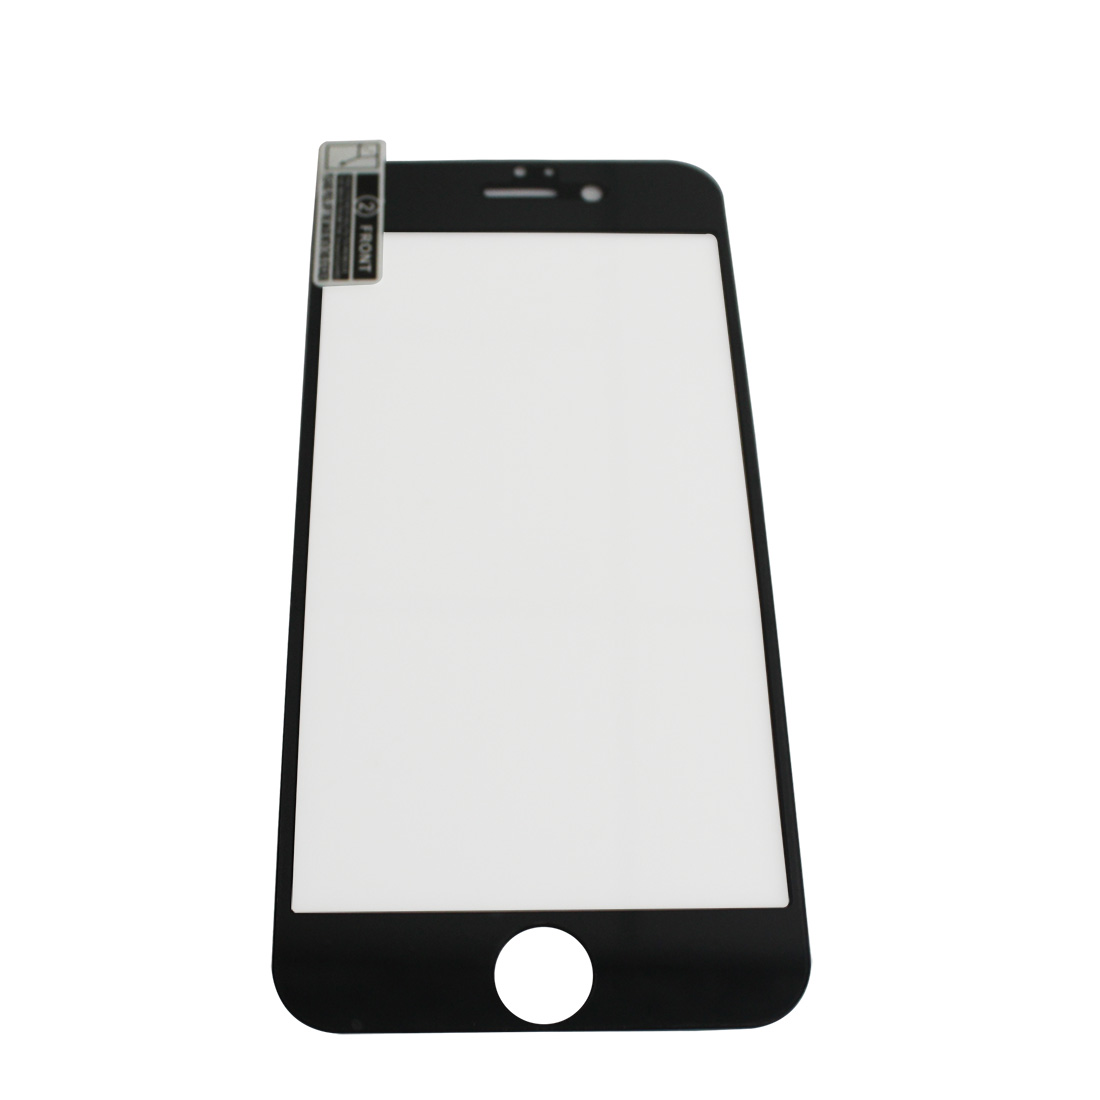 Support wholesales Full Coverage Premium HD Tempered Glass Film Screen Protecter for iPhone 6 Plus s 5.5 Inch(China (Mainland))